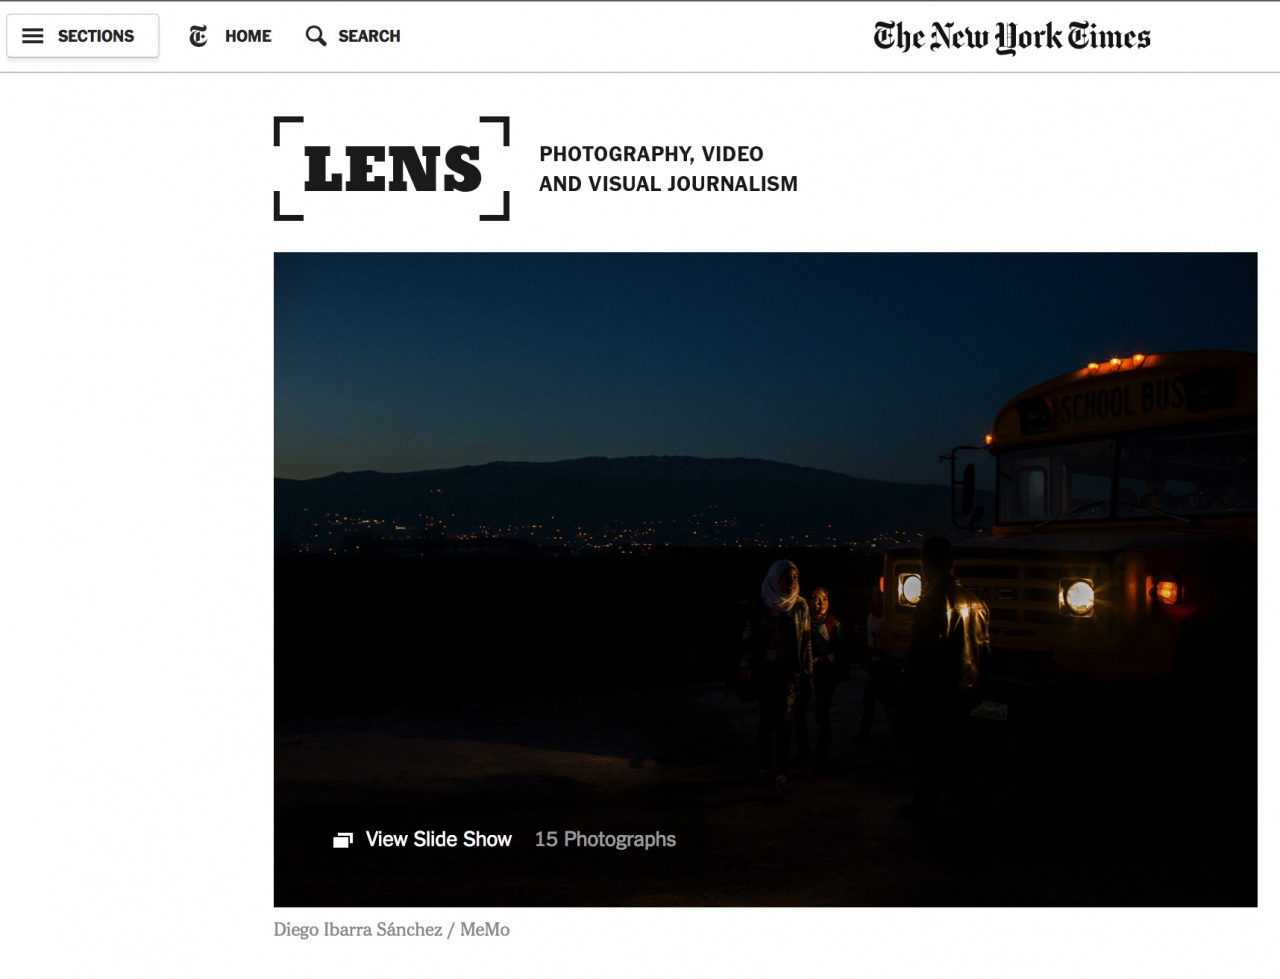 Hijacked education on LENS-THE NEW YORK TIMES